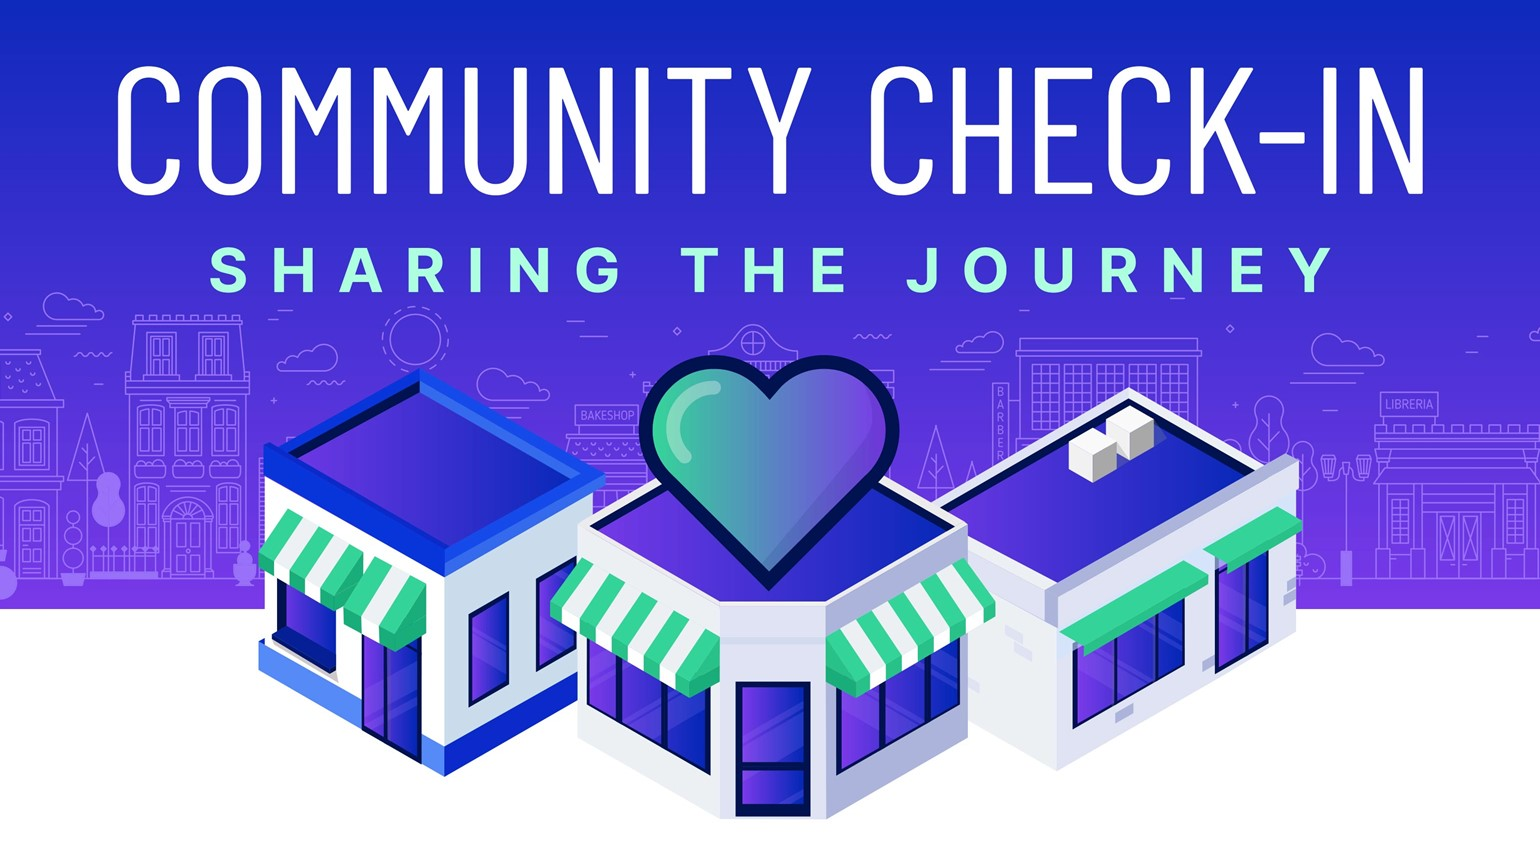 Community Check-In: Sharing the Journey